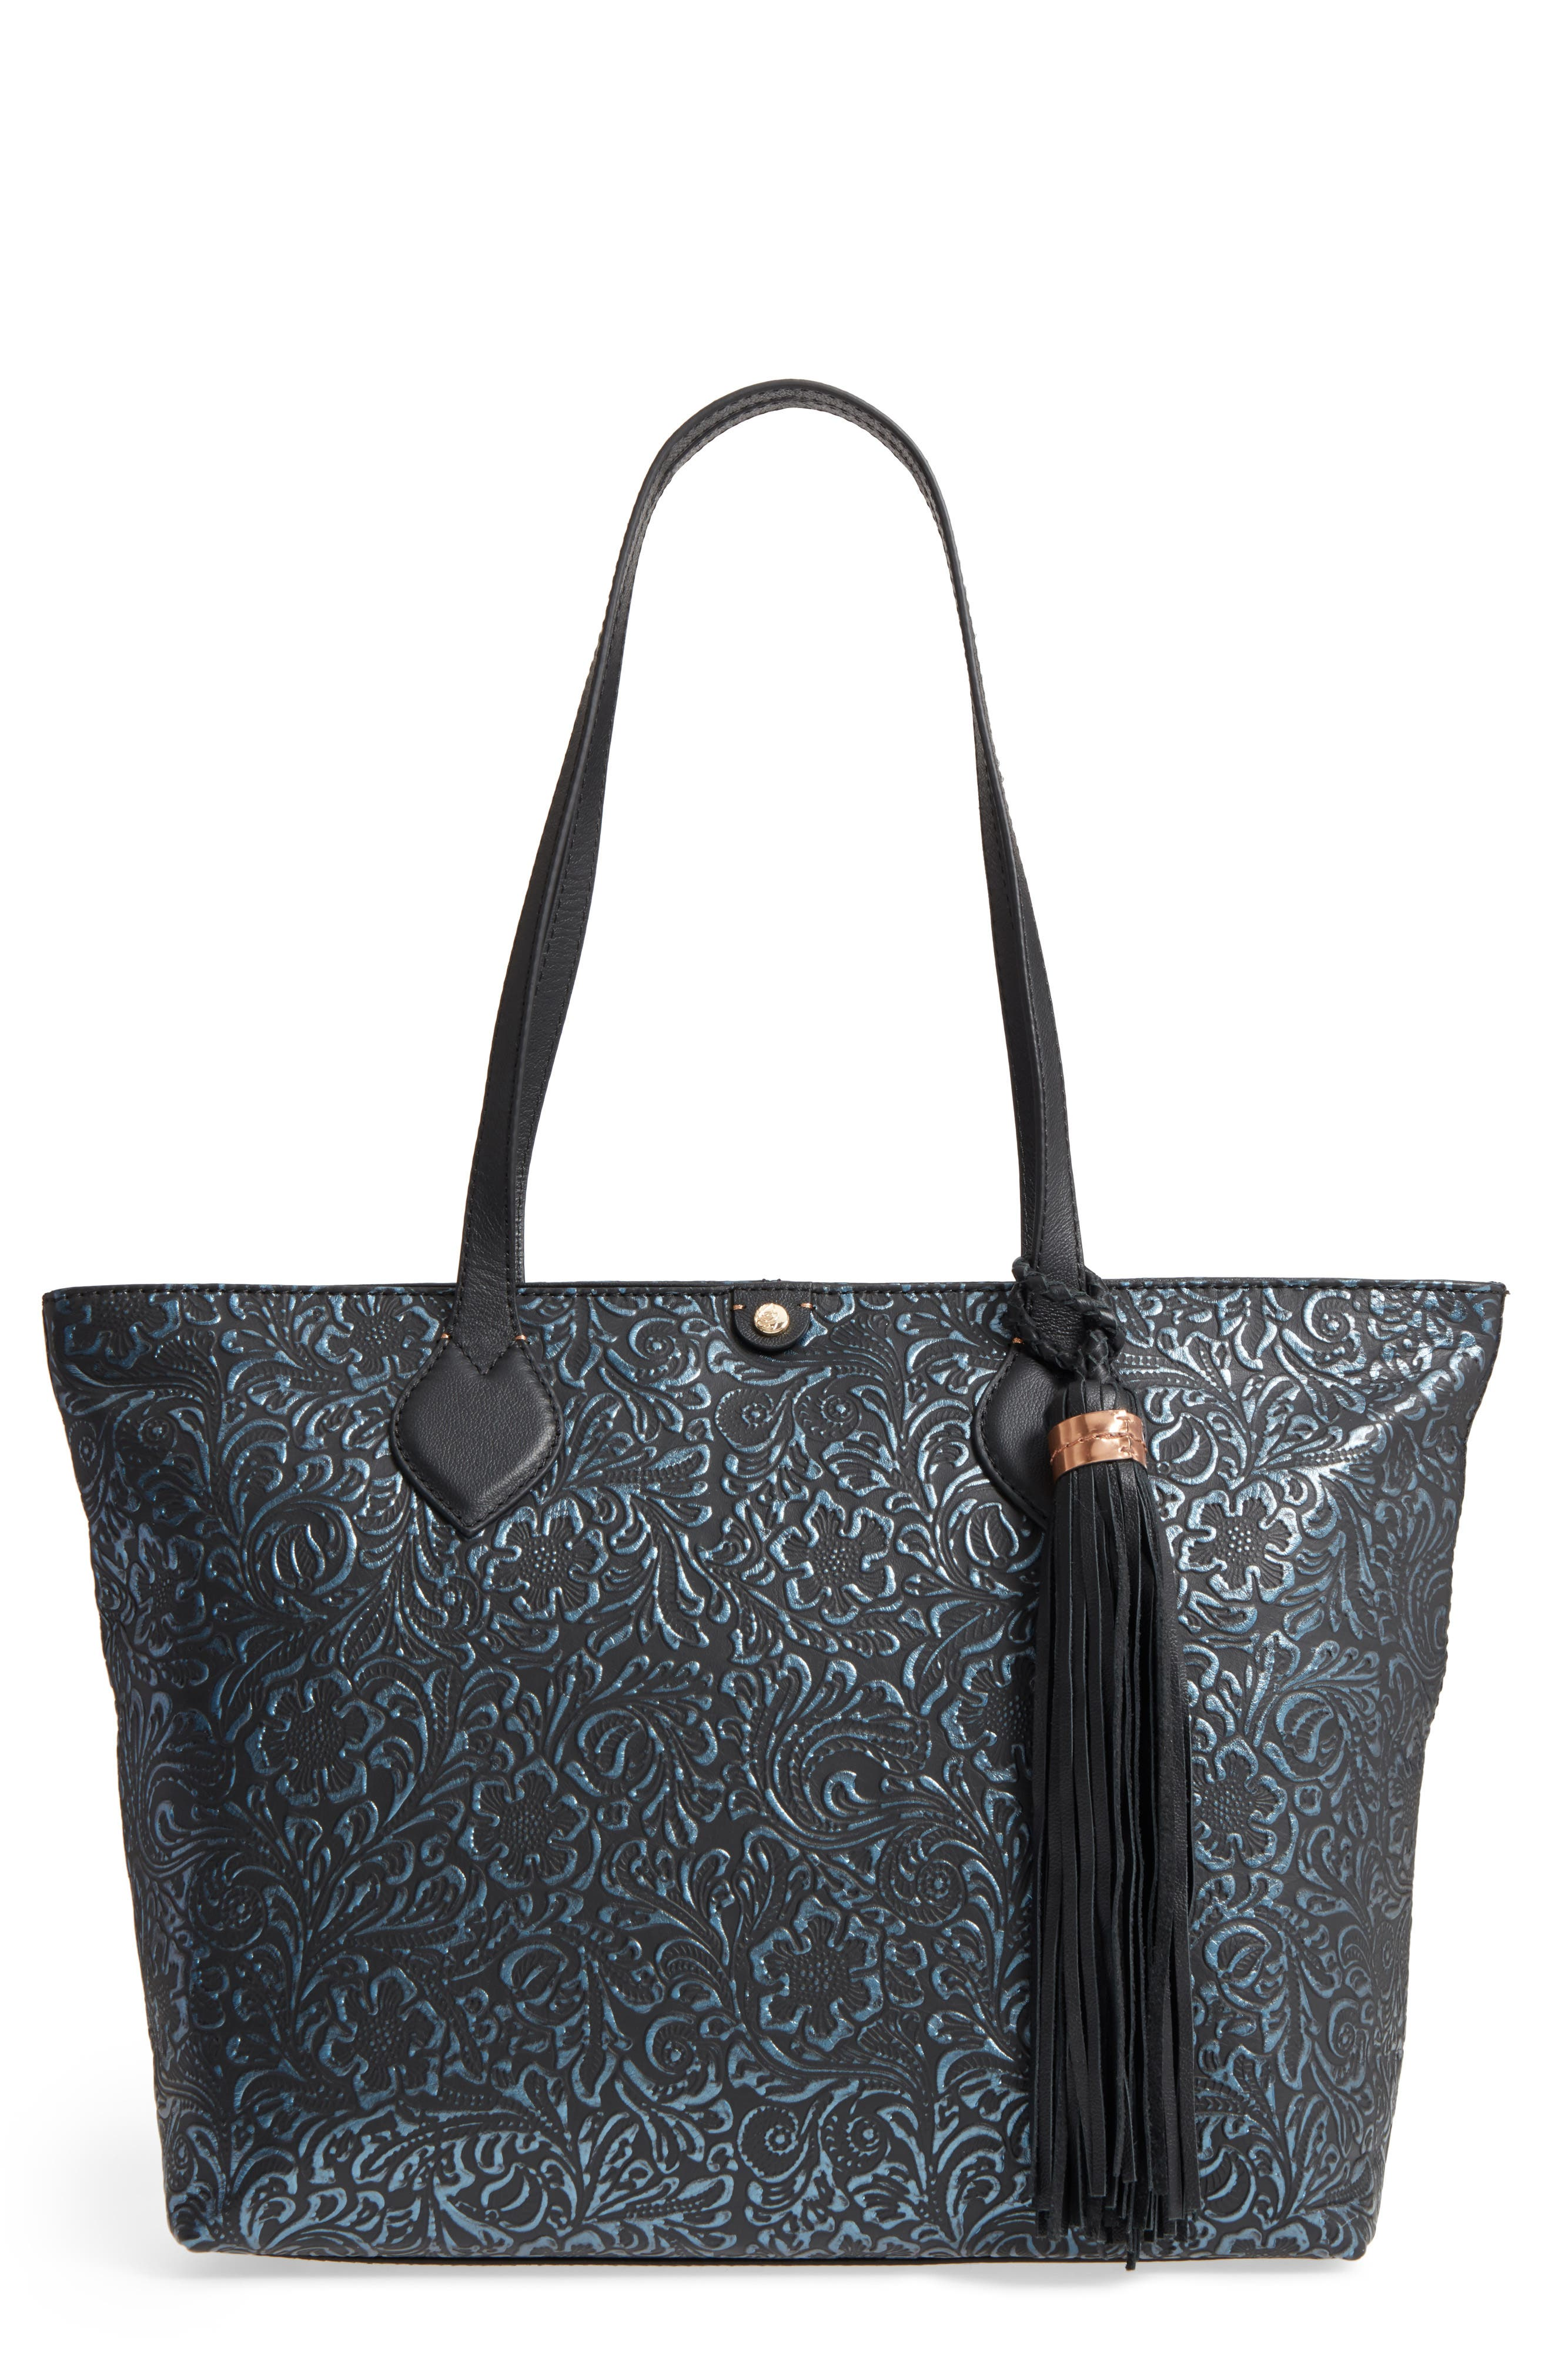 Barbados Leather Tote,                         Main,                         color, 001